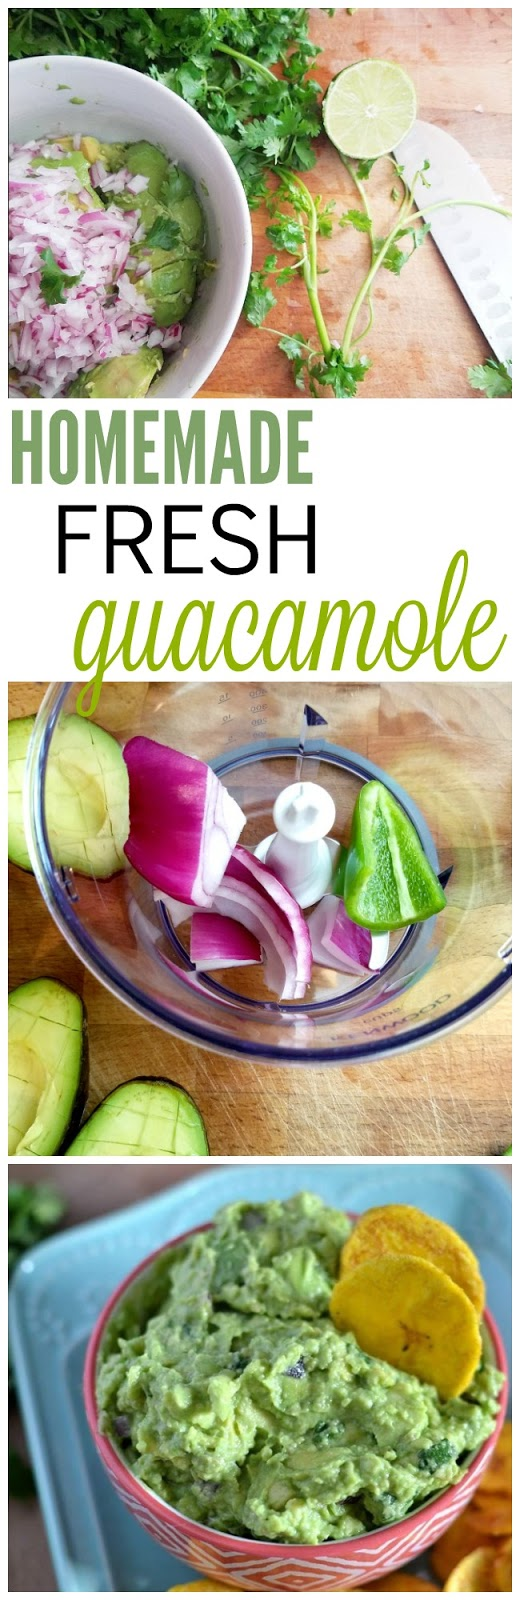 Homemade guacamole recipe - whole 30 approved.